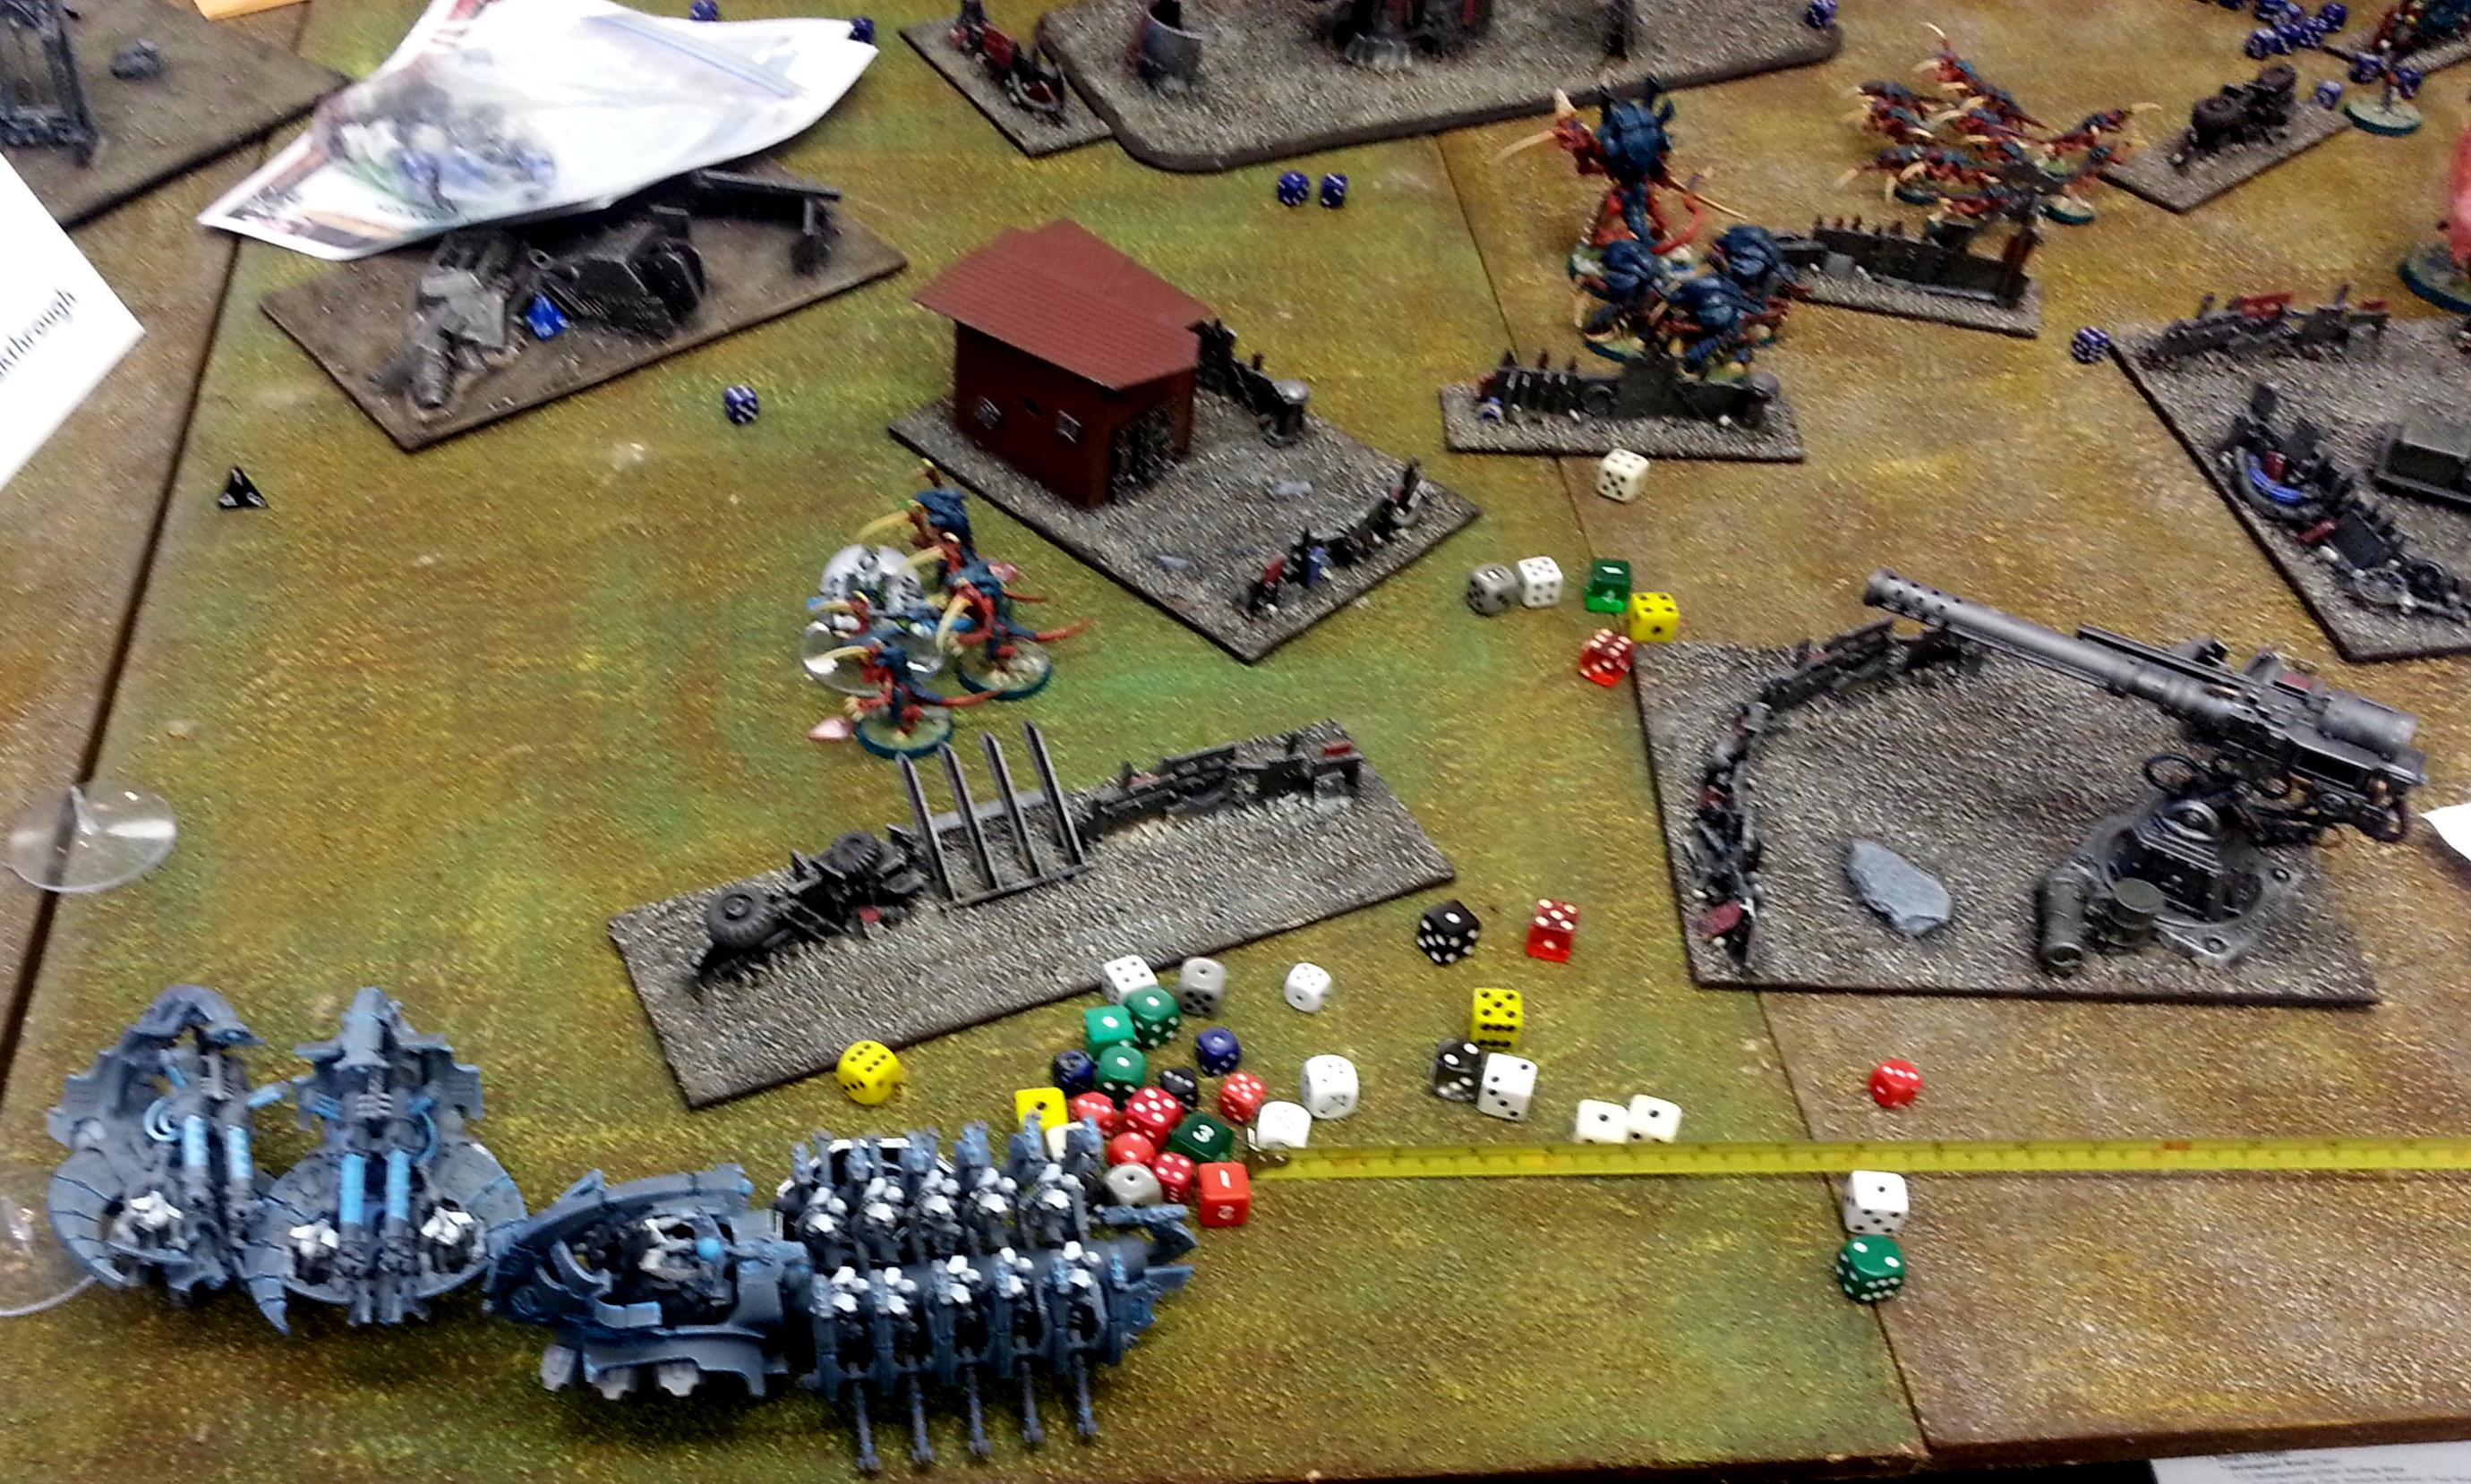 Necrons, Tyranids, TUrn 4a Necrons: Barges, Ark leave board